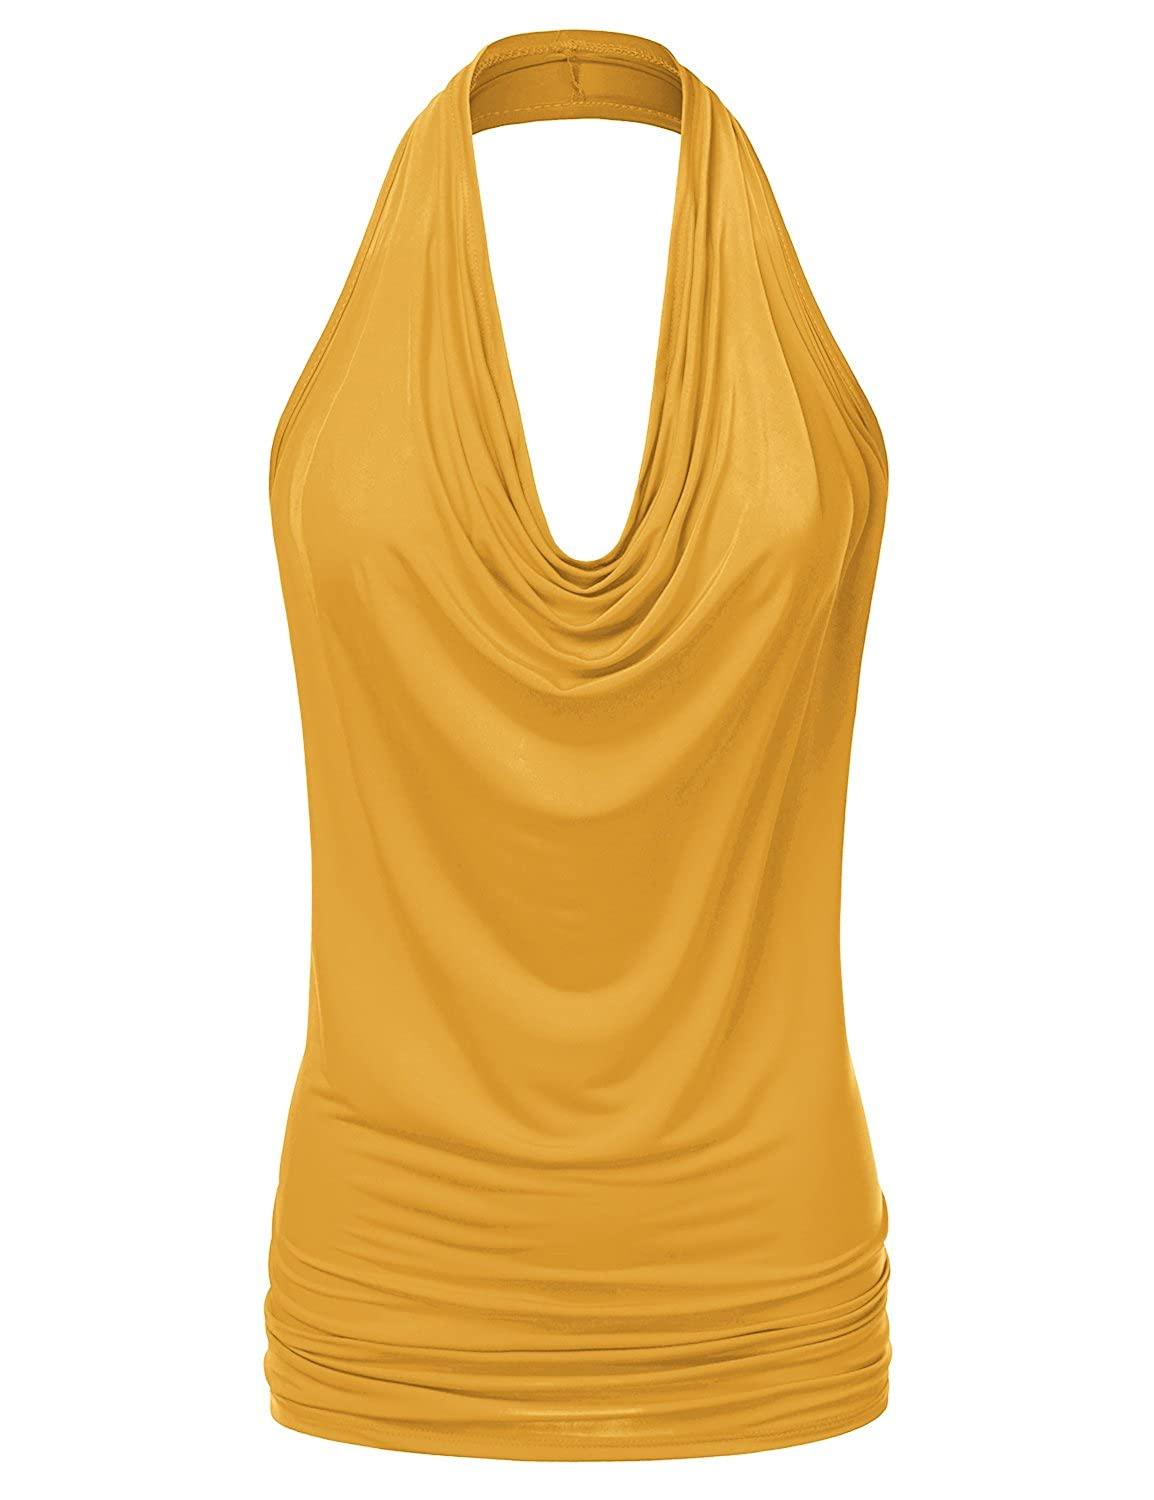 94825096a12ddb #CWTHT03 - Doublju Womens Sleeveless Sexy Halter Drape Cowl Neck Top With Plus  Size Features Halter Neck And Drape Cowl Neck Sleeveless Top